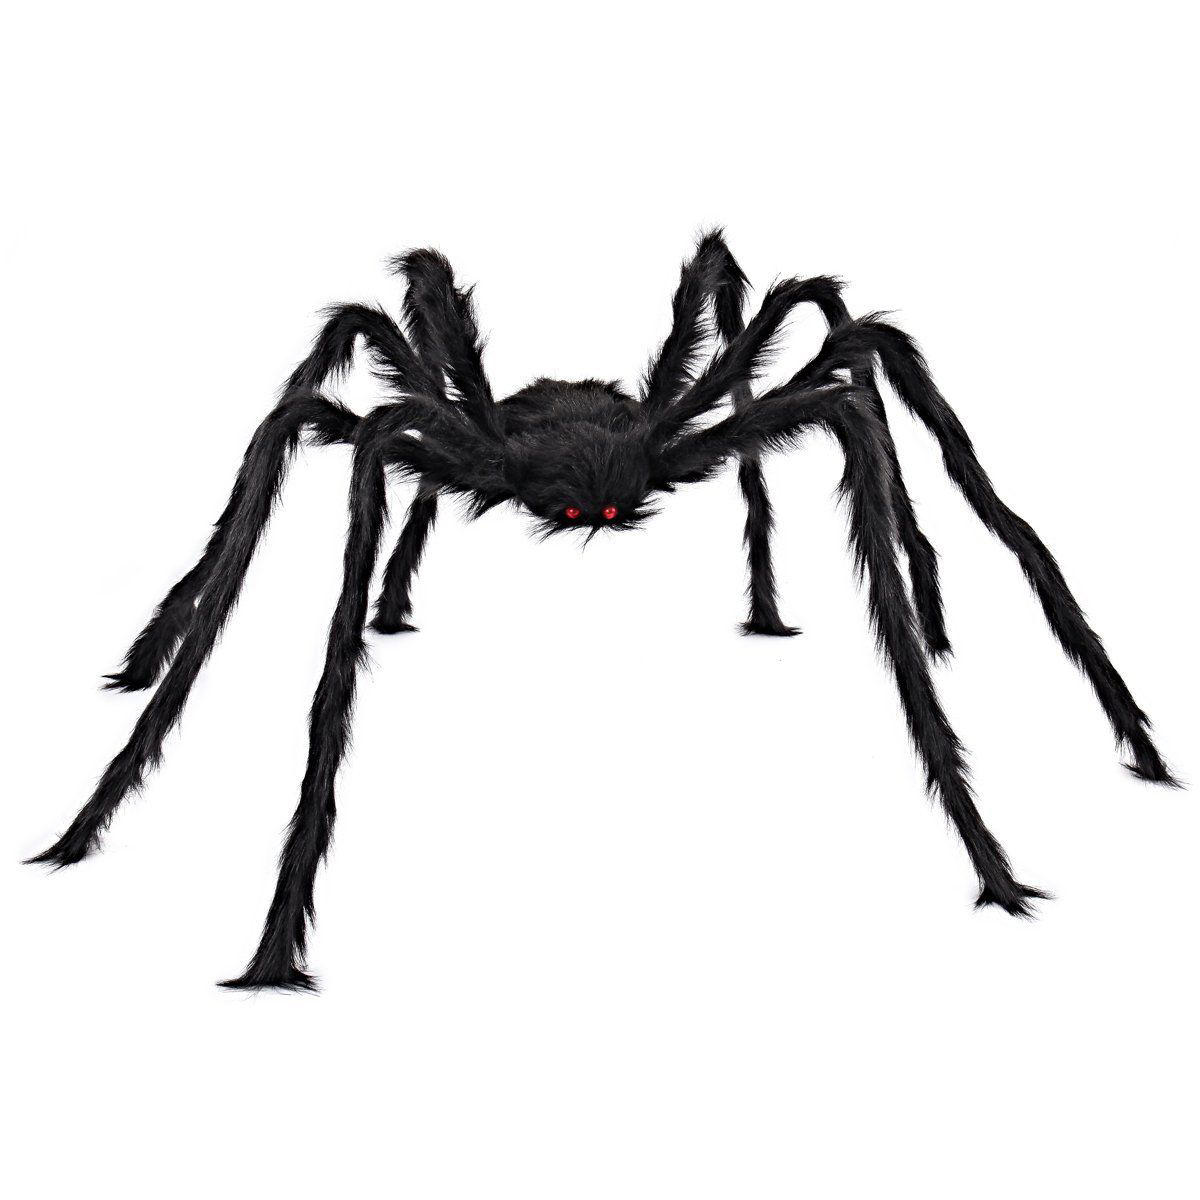 5FT/150cm Hairy Giant Spider Decorations Huge Halloween Outdoor Decor Toys for Party - 1